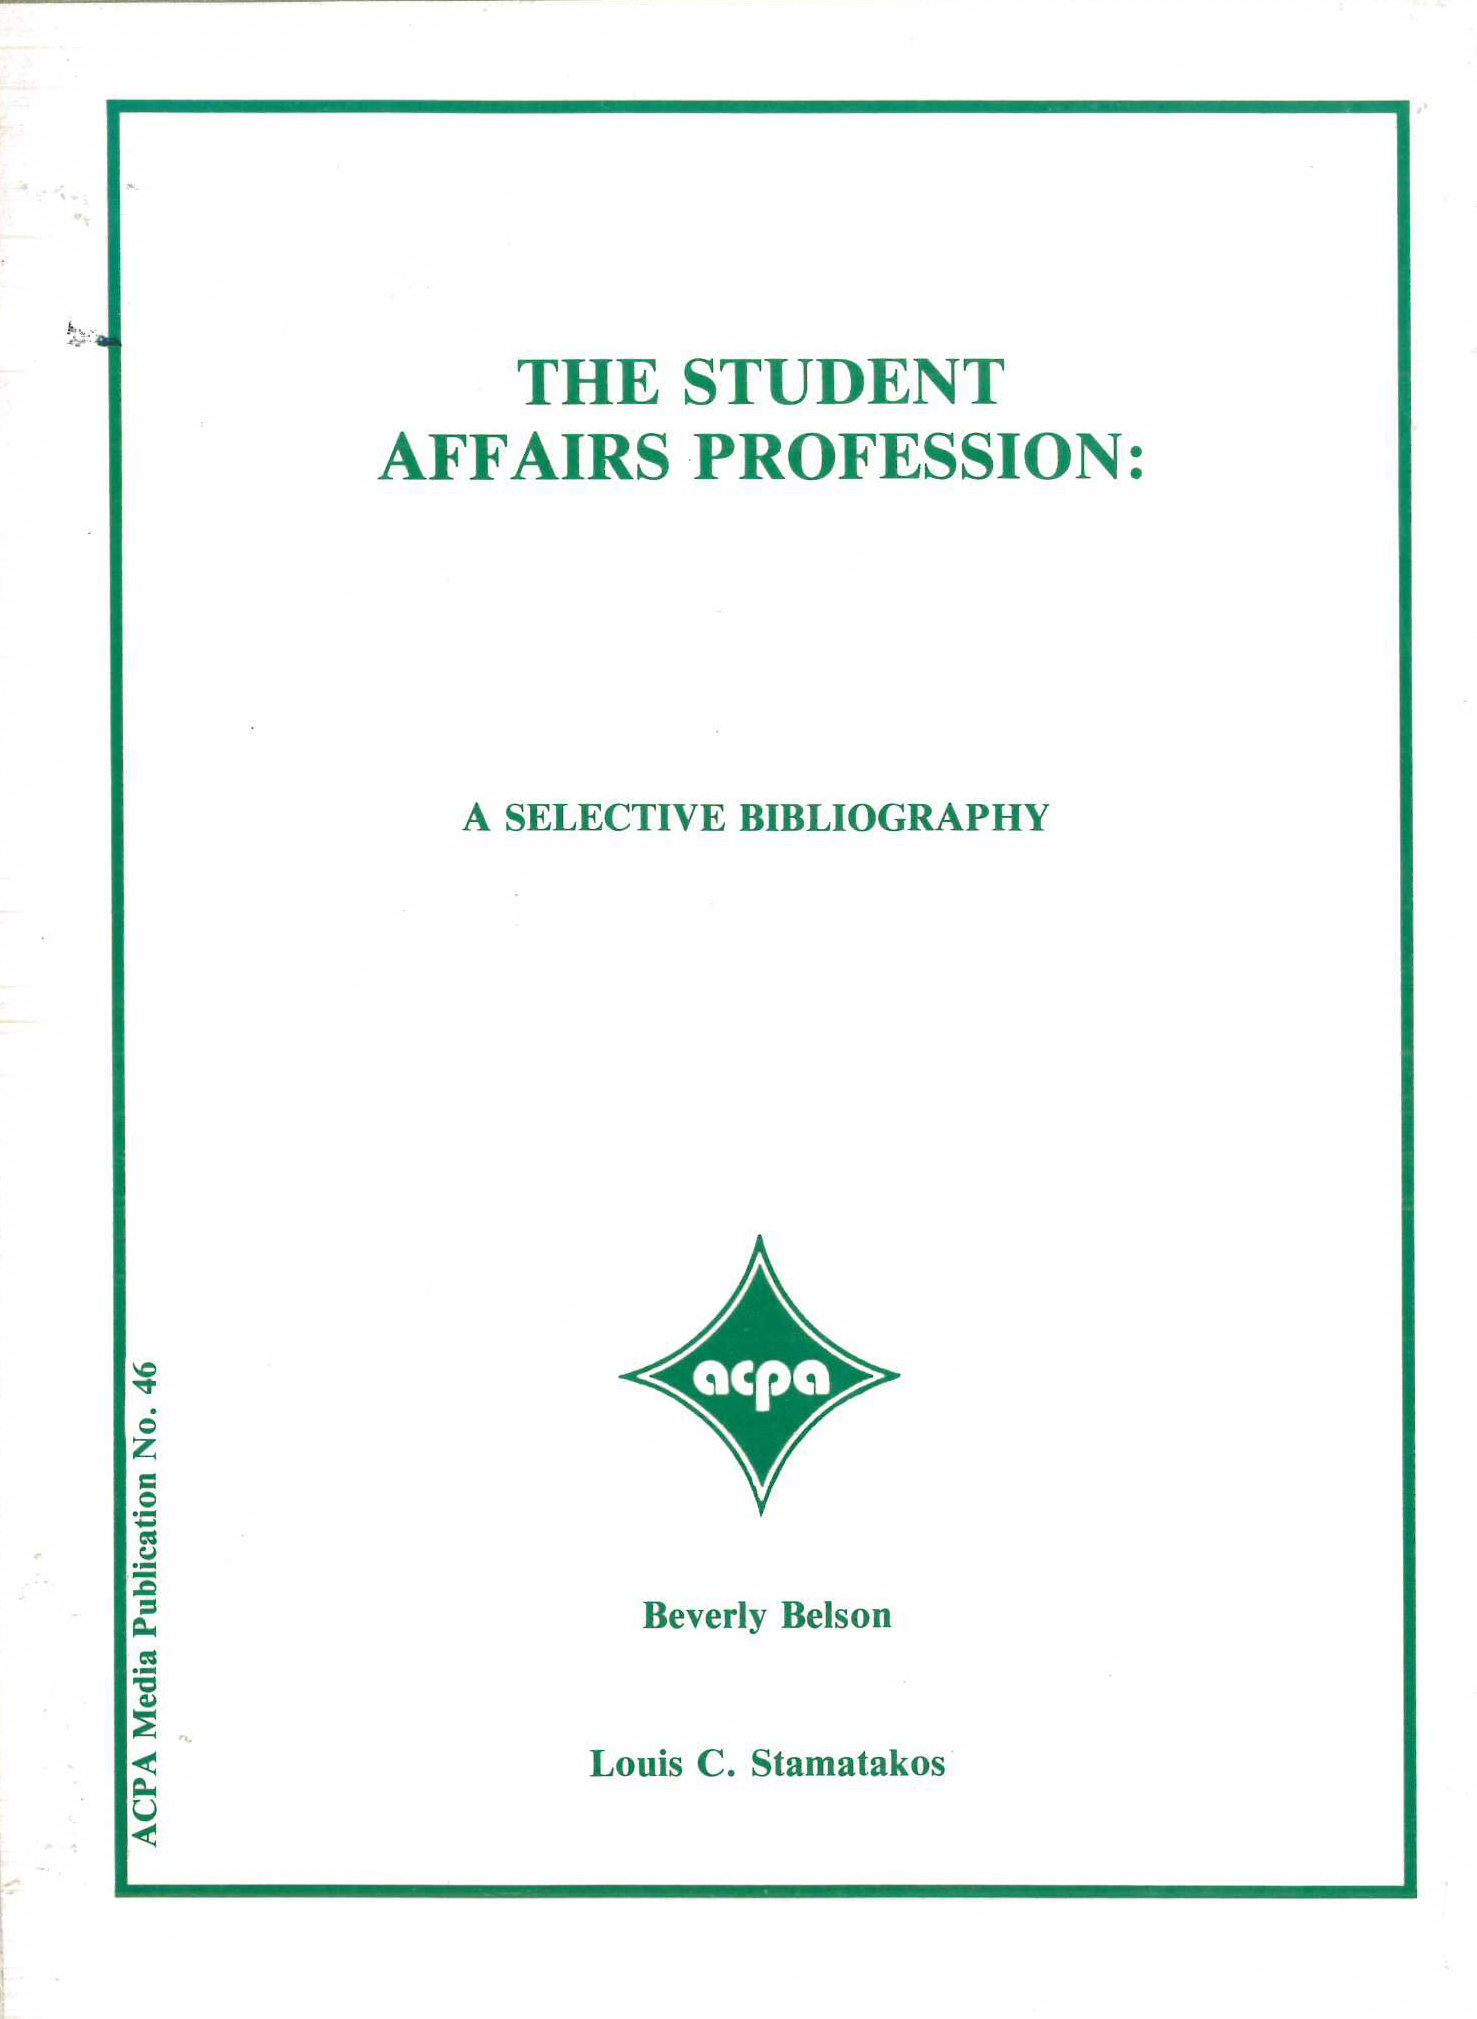 The Student Affairs Profession: A Selective Bibliography